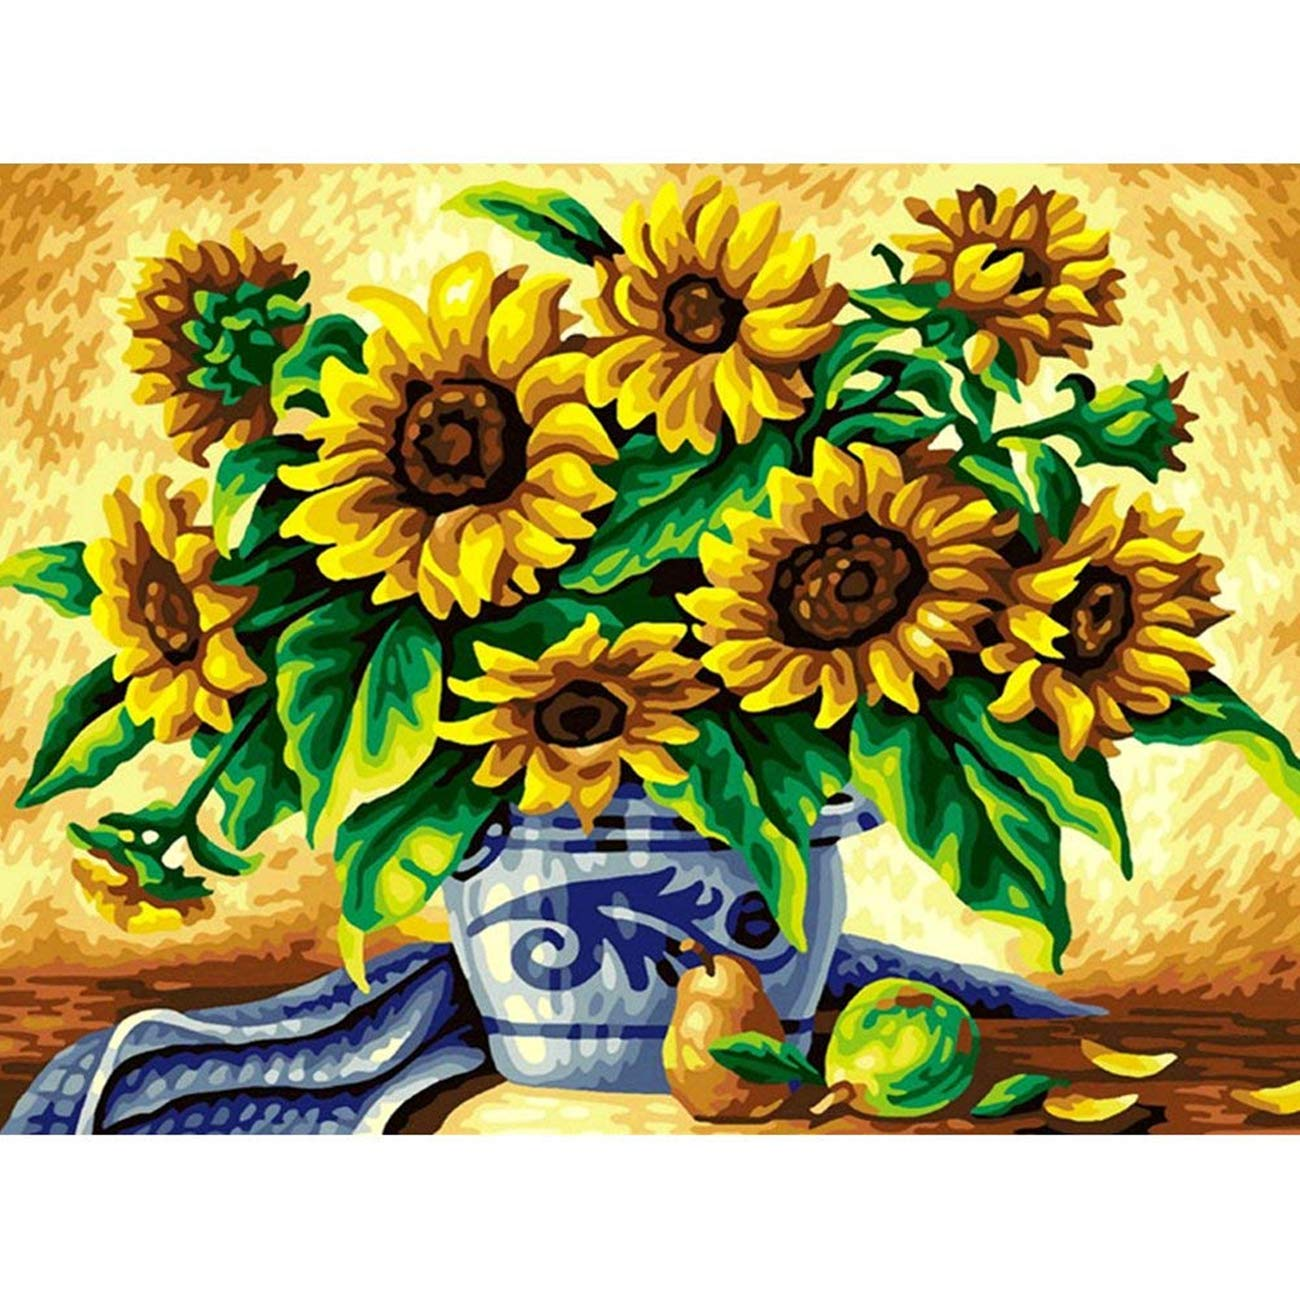 AIRDEA 5D Diamond Painting by Number Kit, Full Drill Sunflowers Vase Rhinestone Embroidery Cross Stitch Supply Arts Craft Canvas Wall Decor 13.8x17.8 inch